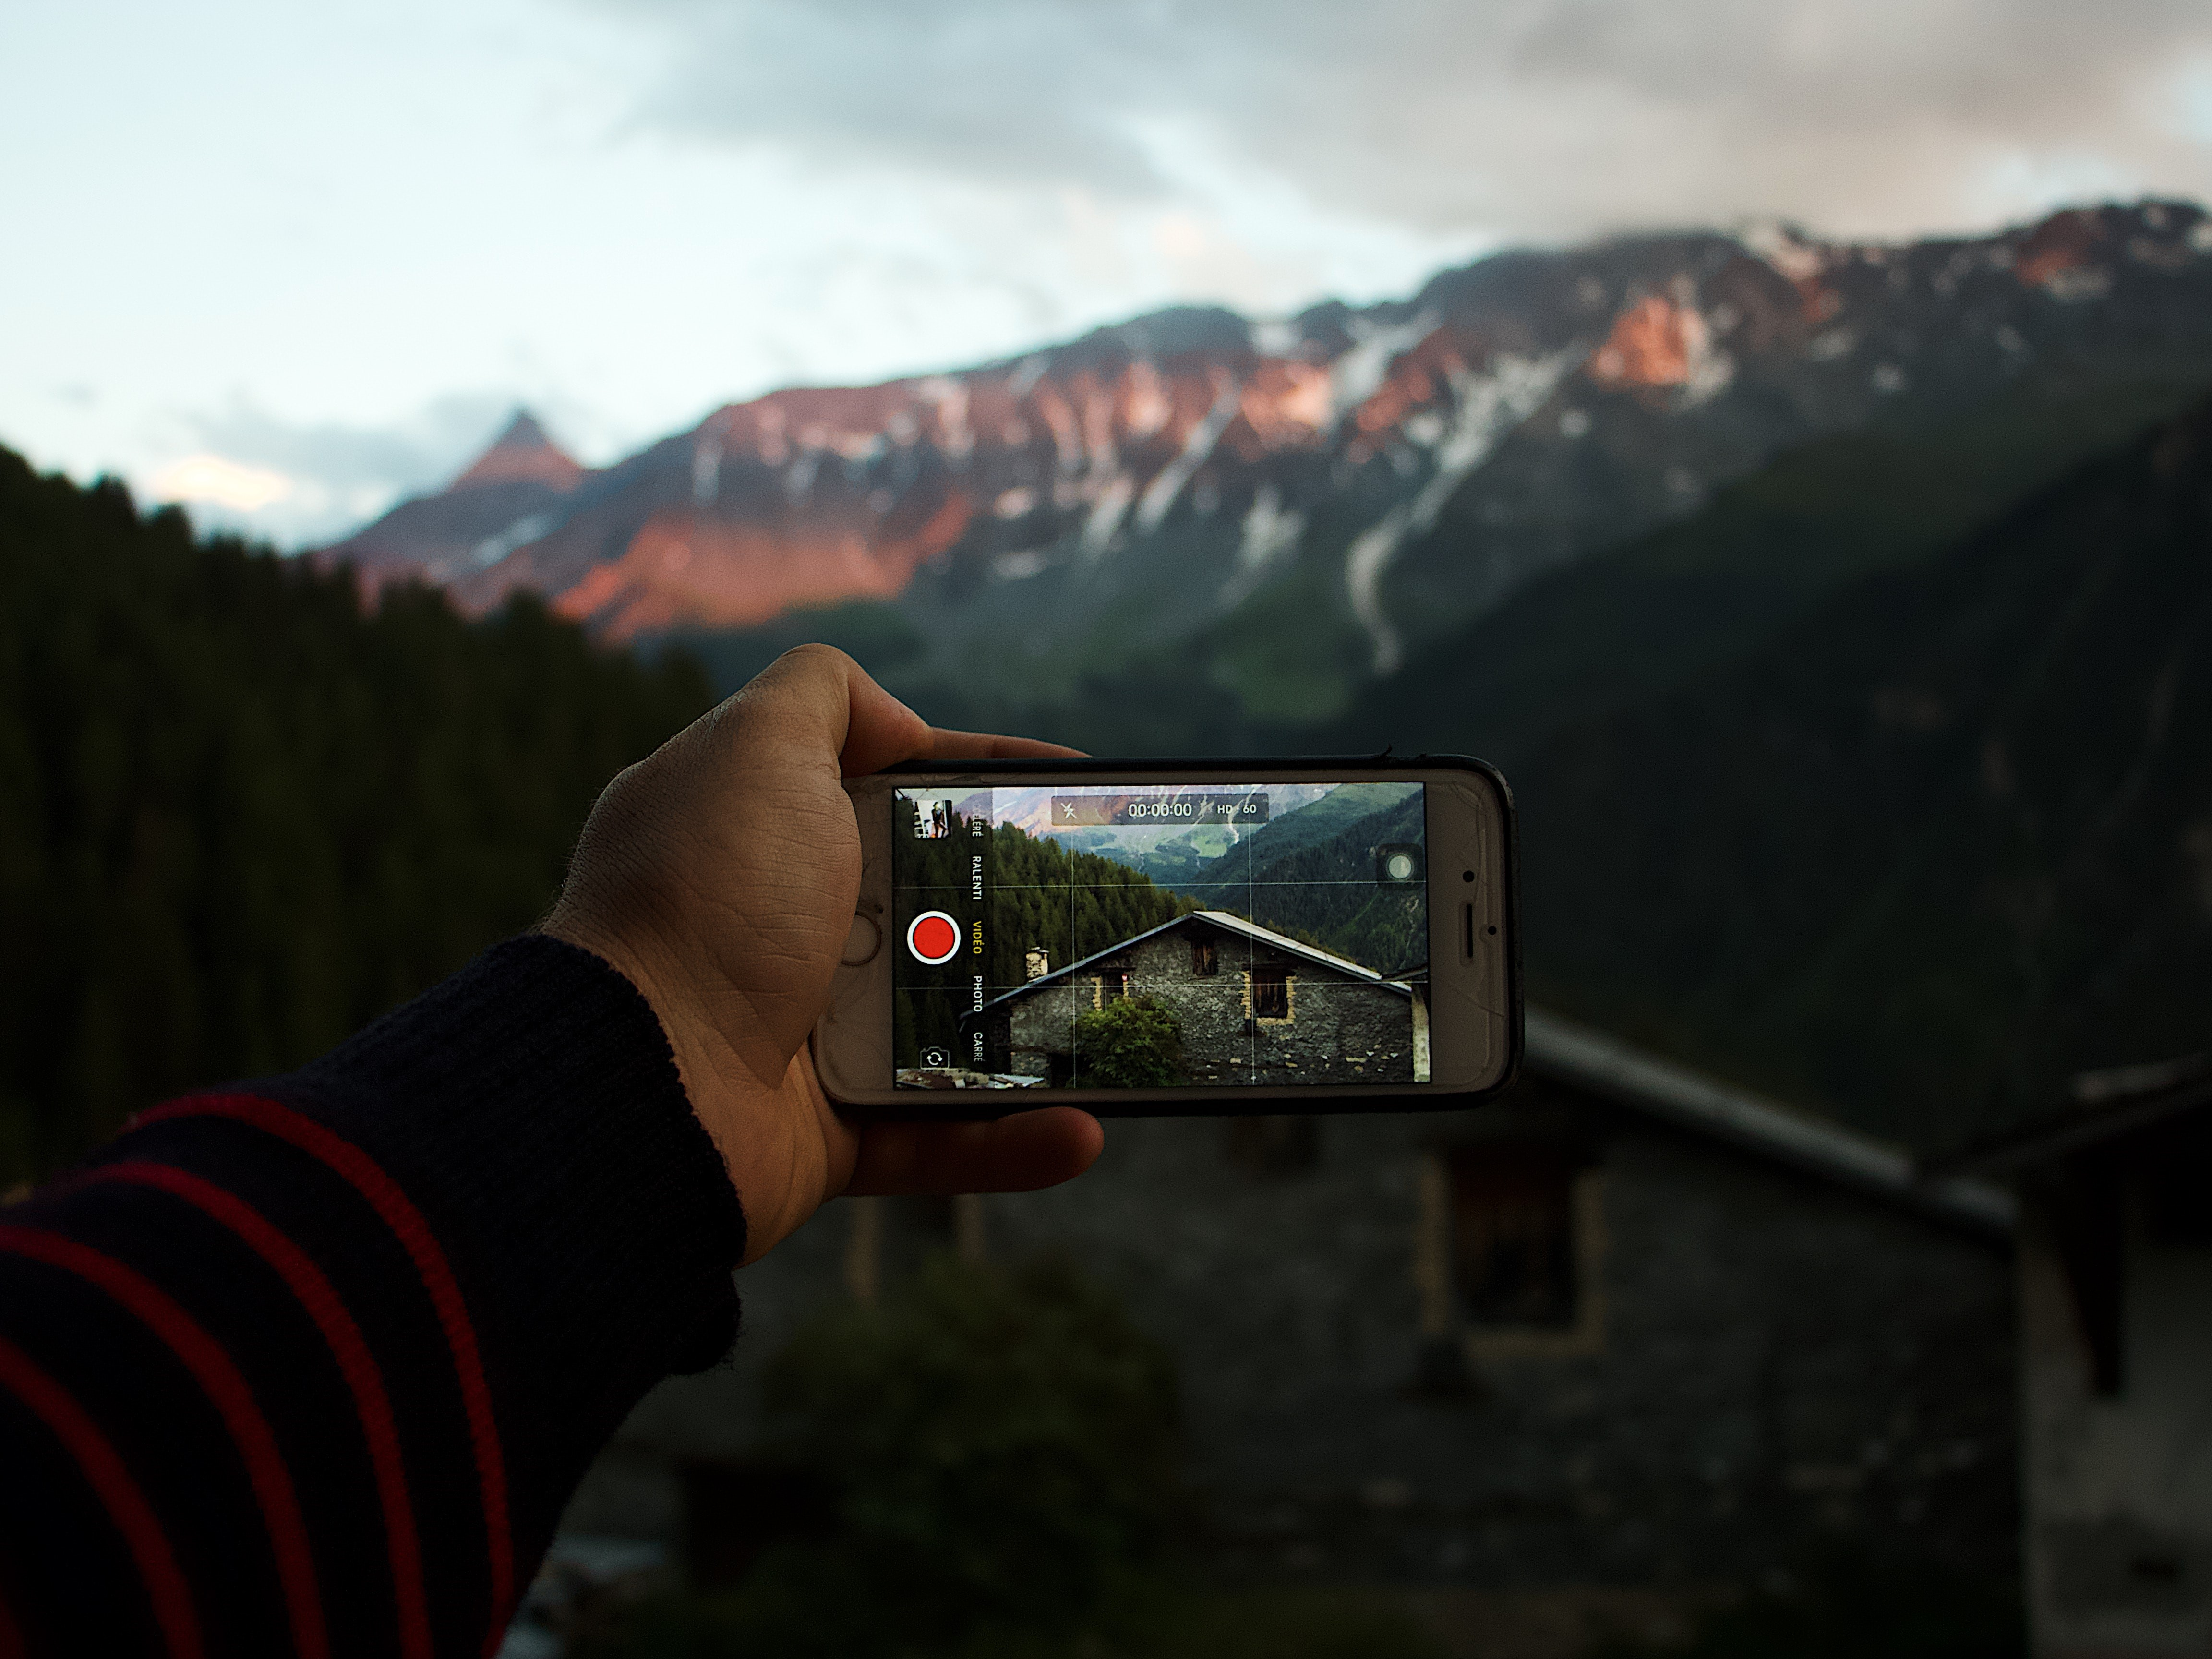 Kwai and TikTok Enter Top 3 Grossing Photo & Video Apps Worldwide for Q2 2019